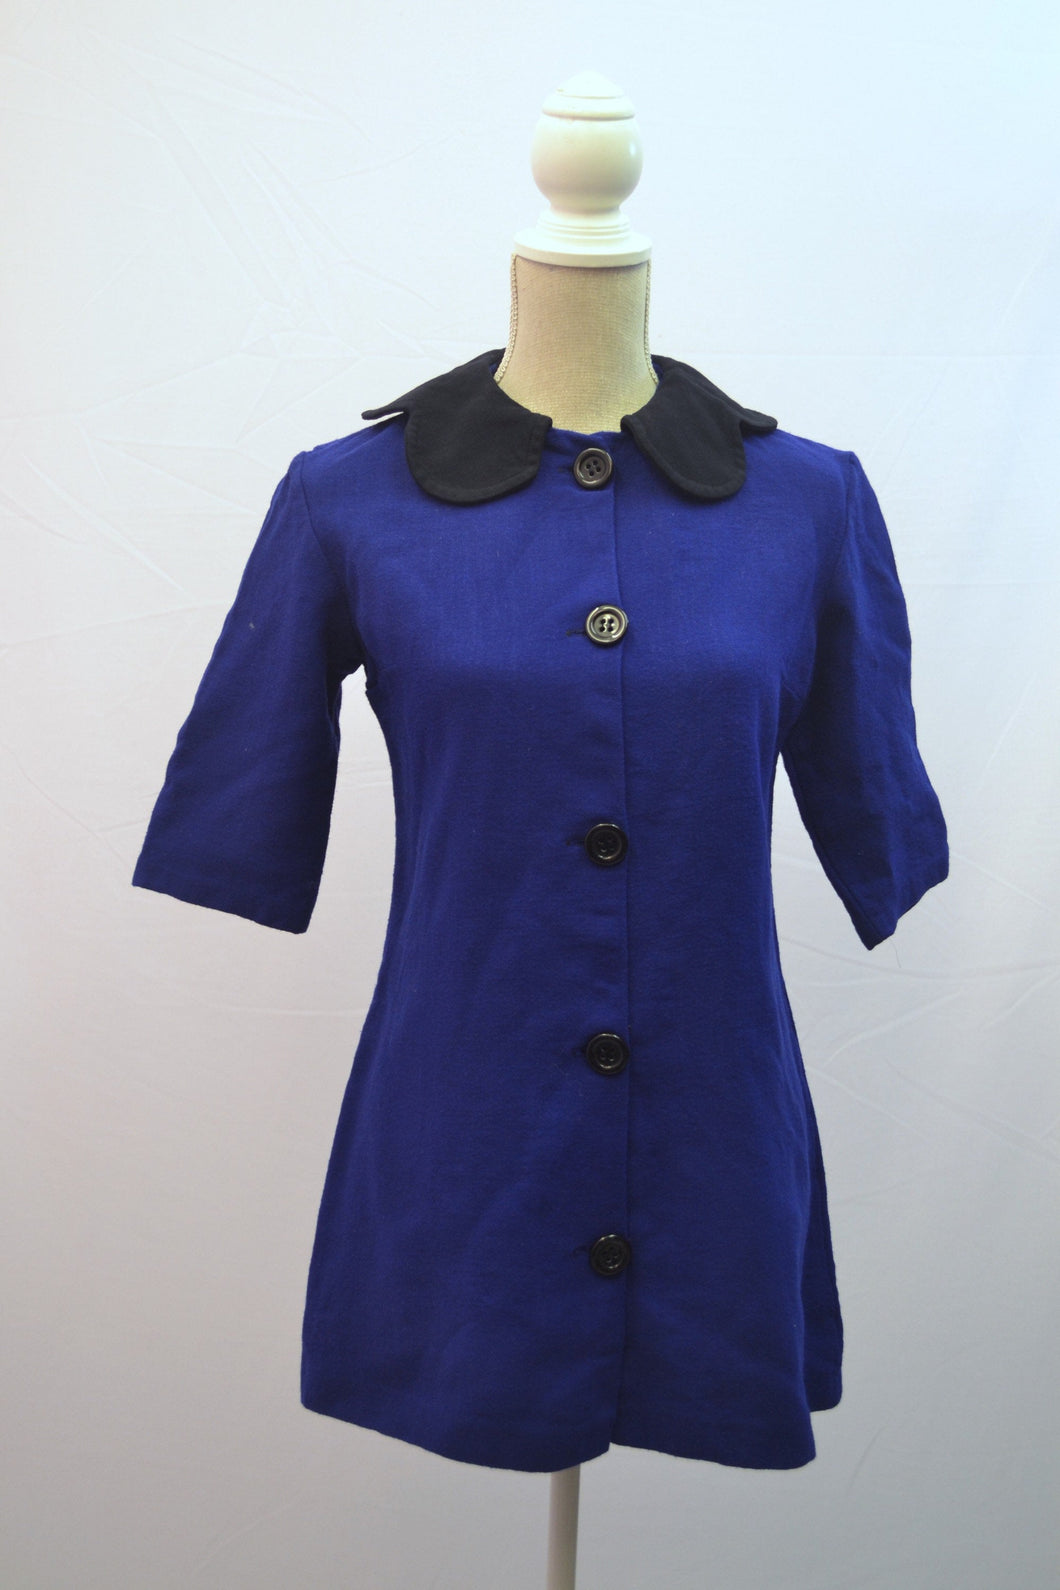 1970s Blue jacket by Model | Scalloped collar ladies blazer | Est UK size 14/16